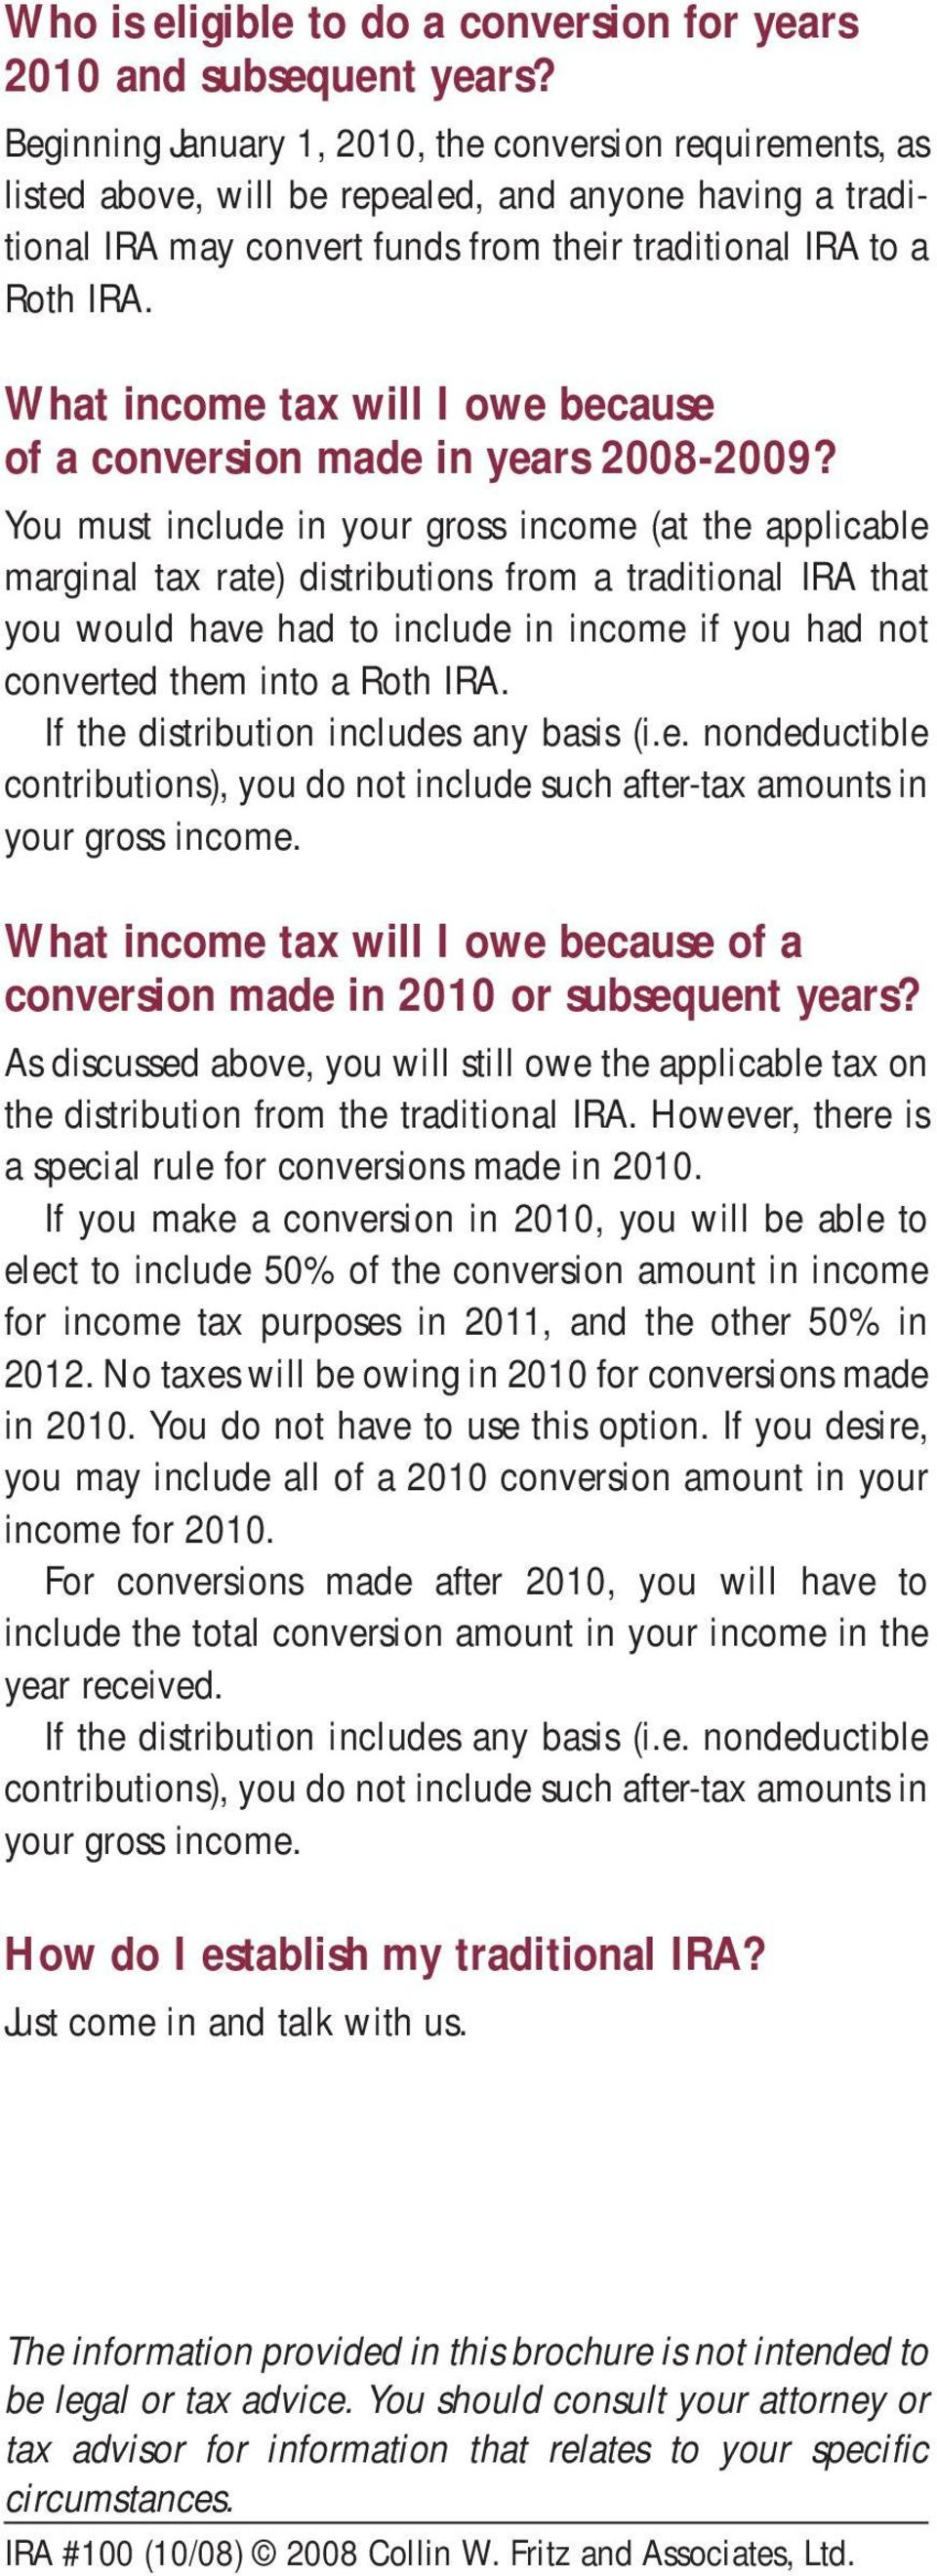 What income tax will I owe because of a conversion made in years 2008-2009?